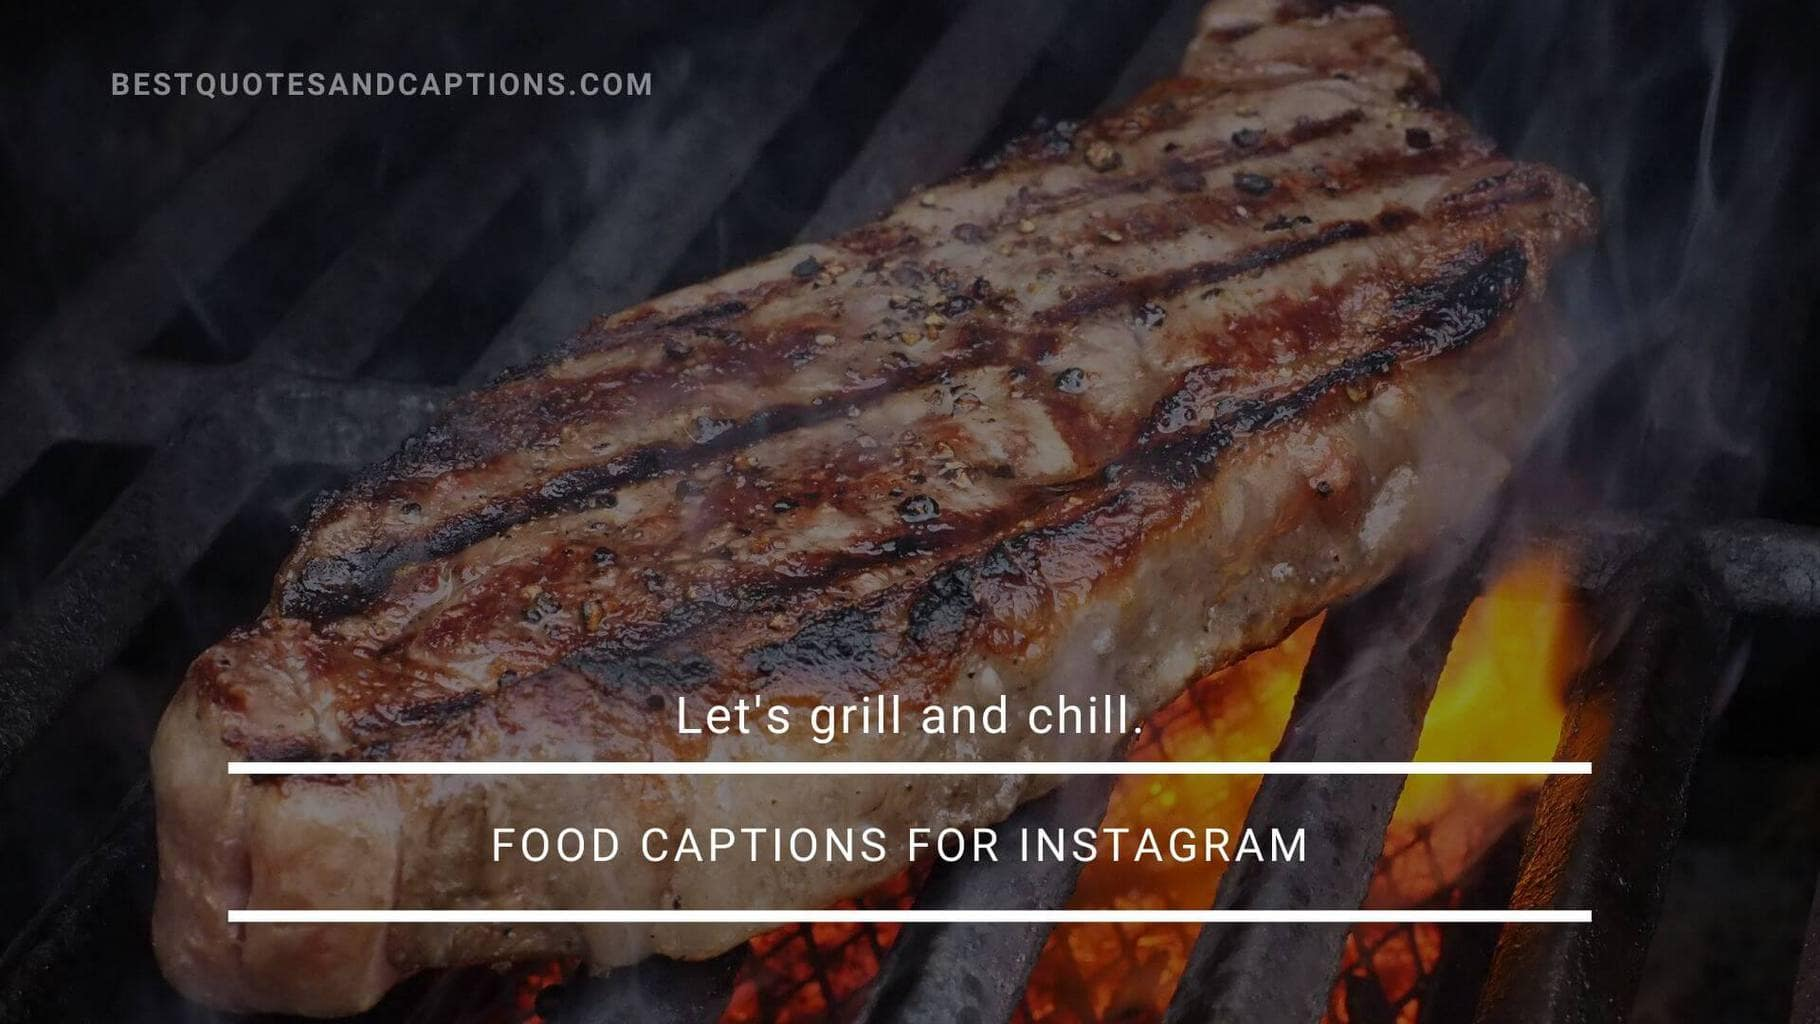 Barbecue captions for instagram